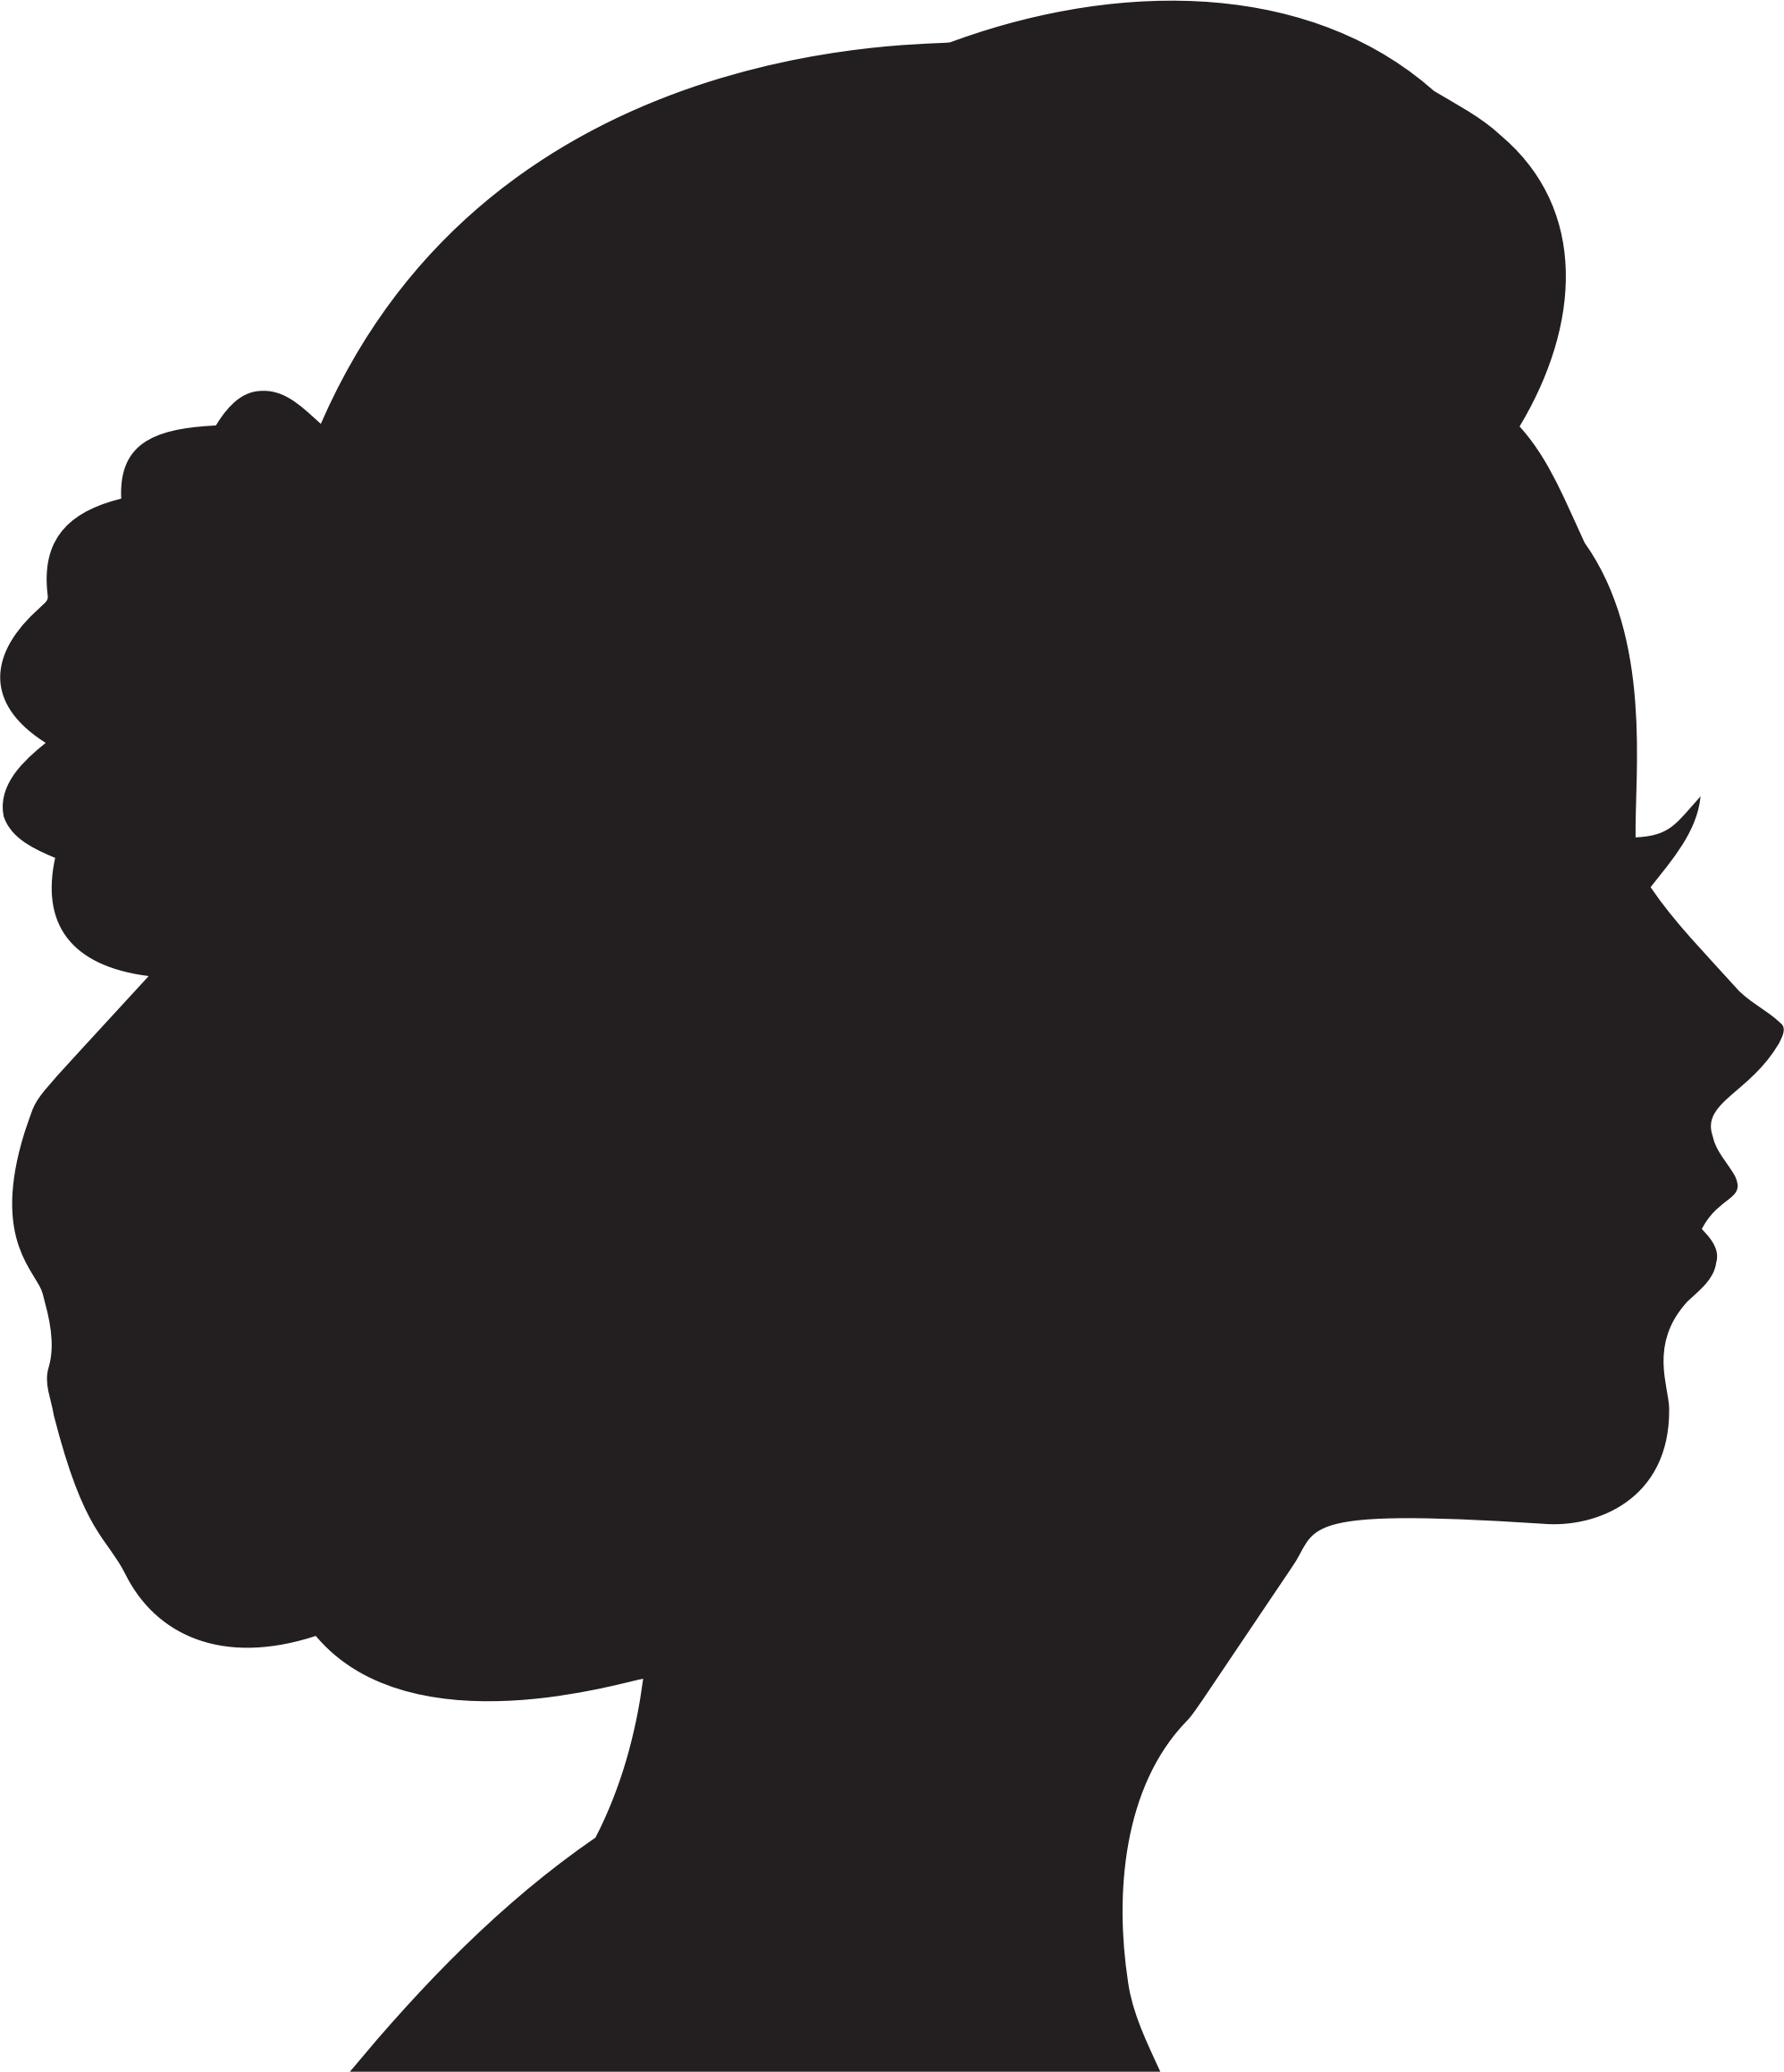 Face Silhouette Profile Images Stock Photos amp Vectors